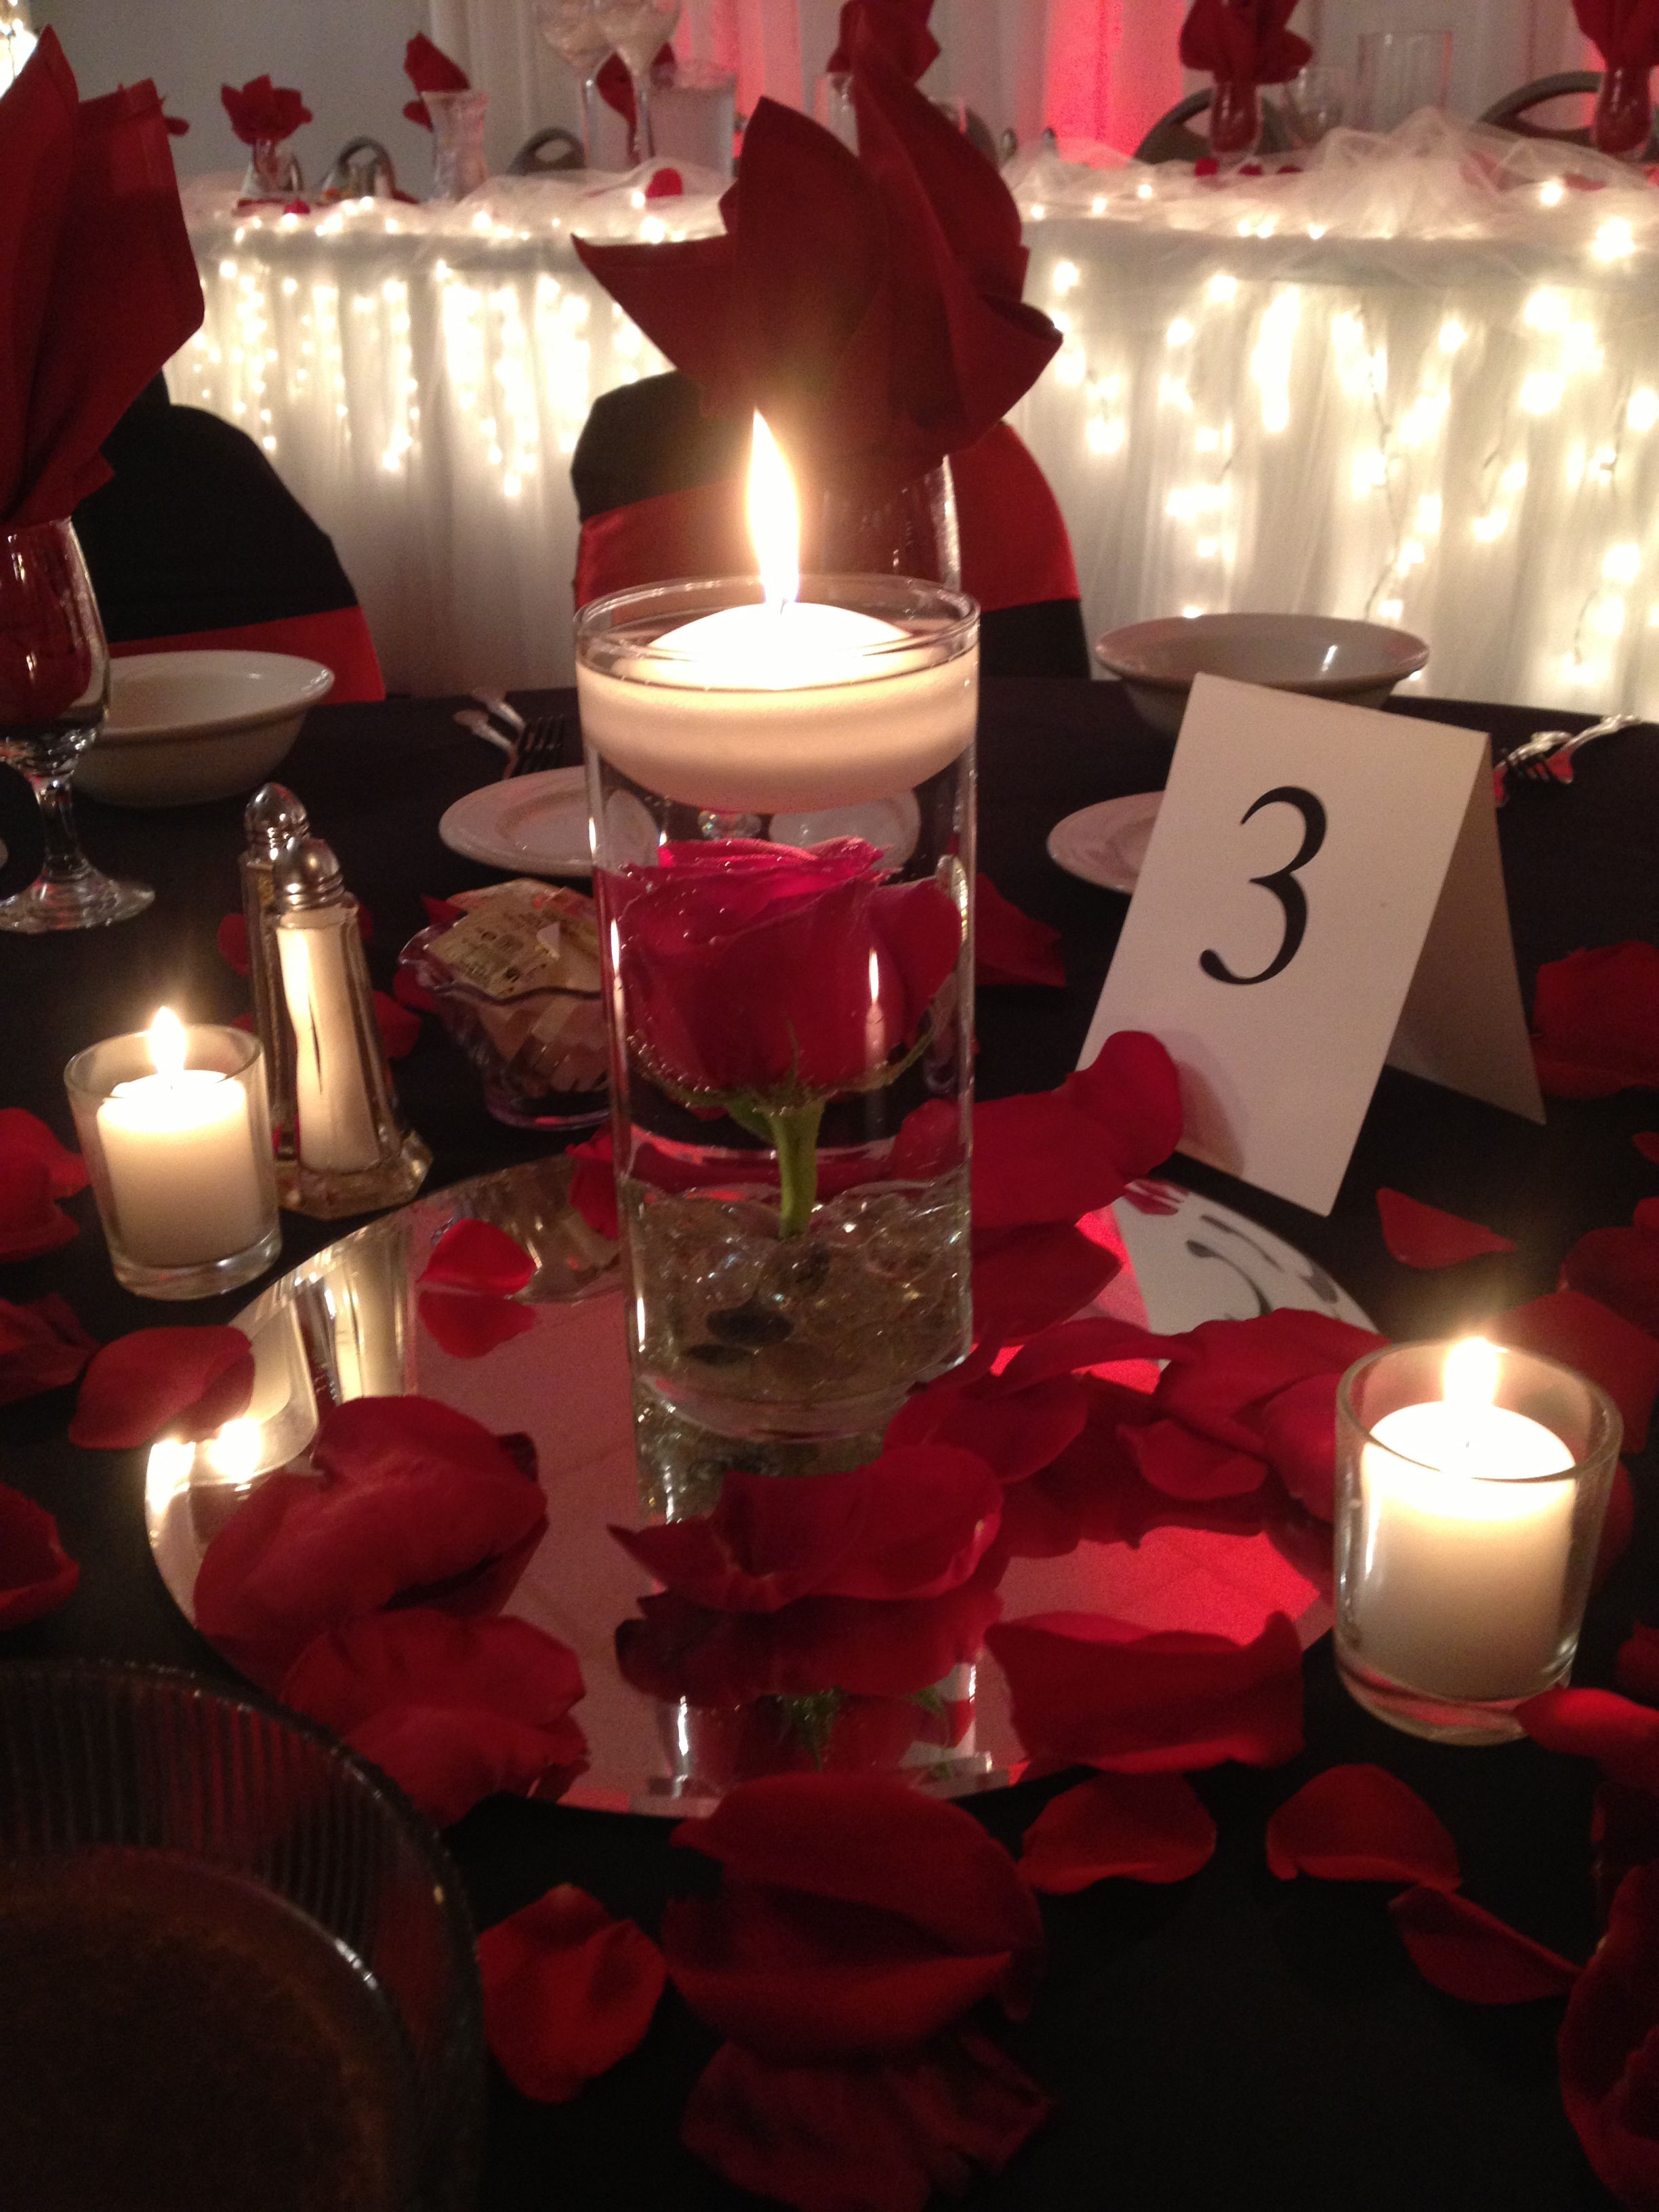 Red Rose Centerpieces For Wedding Tables : Lukas wedding red rose centerpiece with floating candle